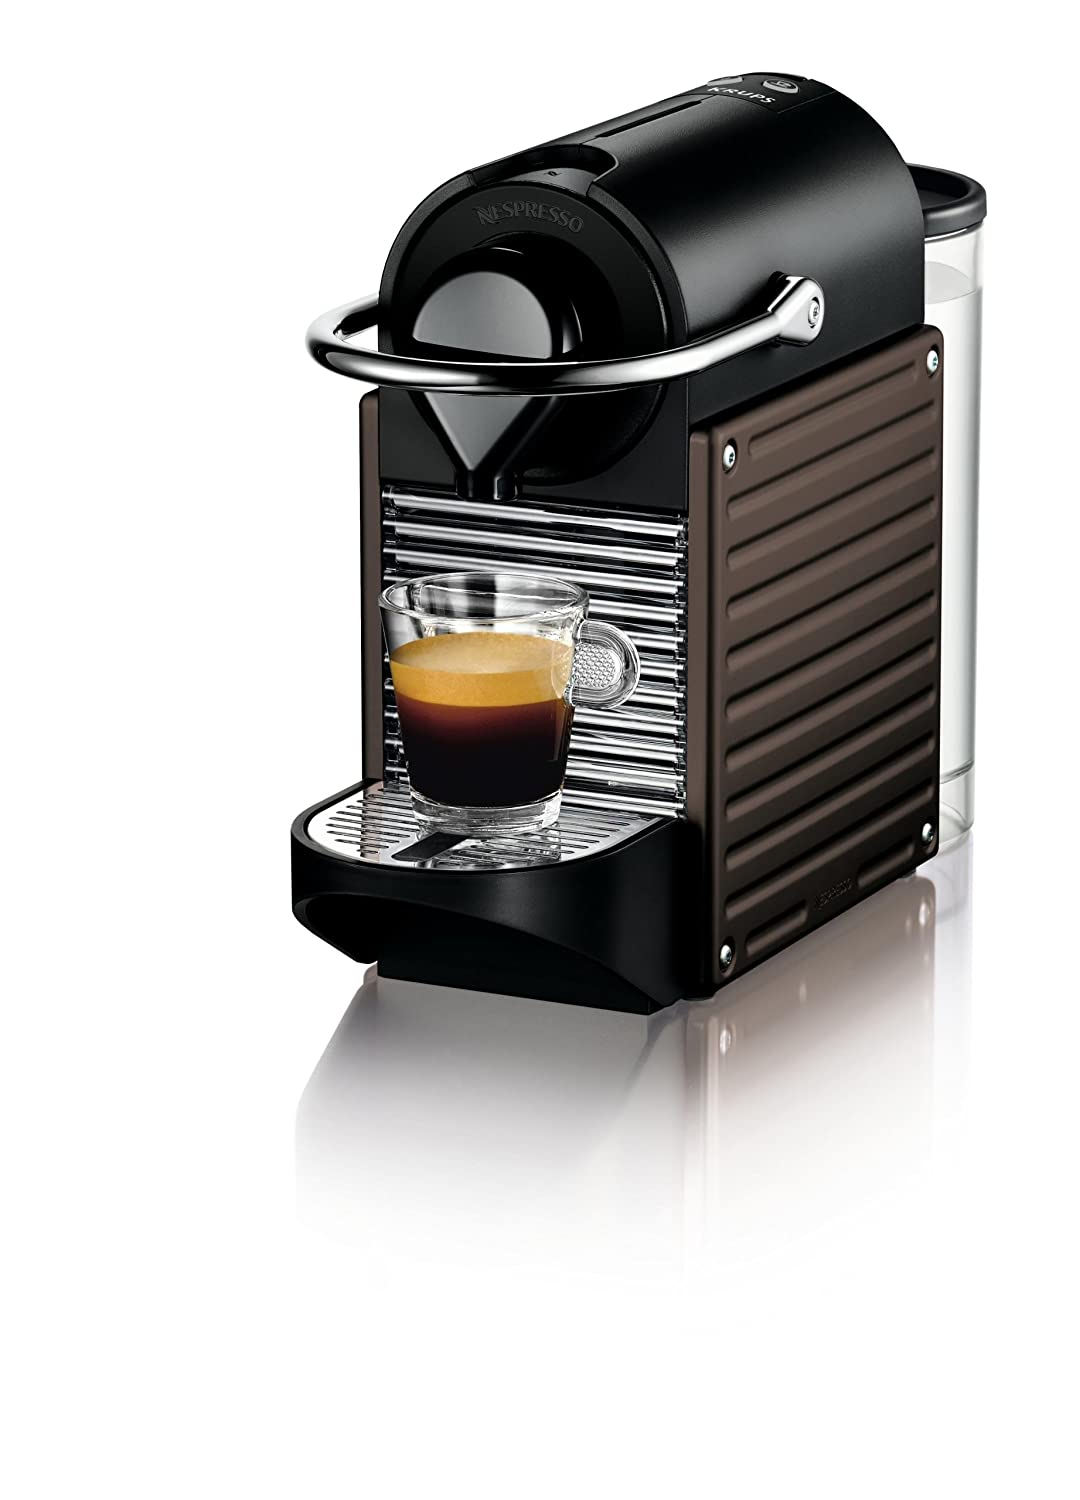 KRUPS NESPRESSO PIXIE XN3008 XN300840 COFFEE MACHINE, DARK BROWN 19 BAR eBay